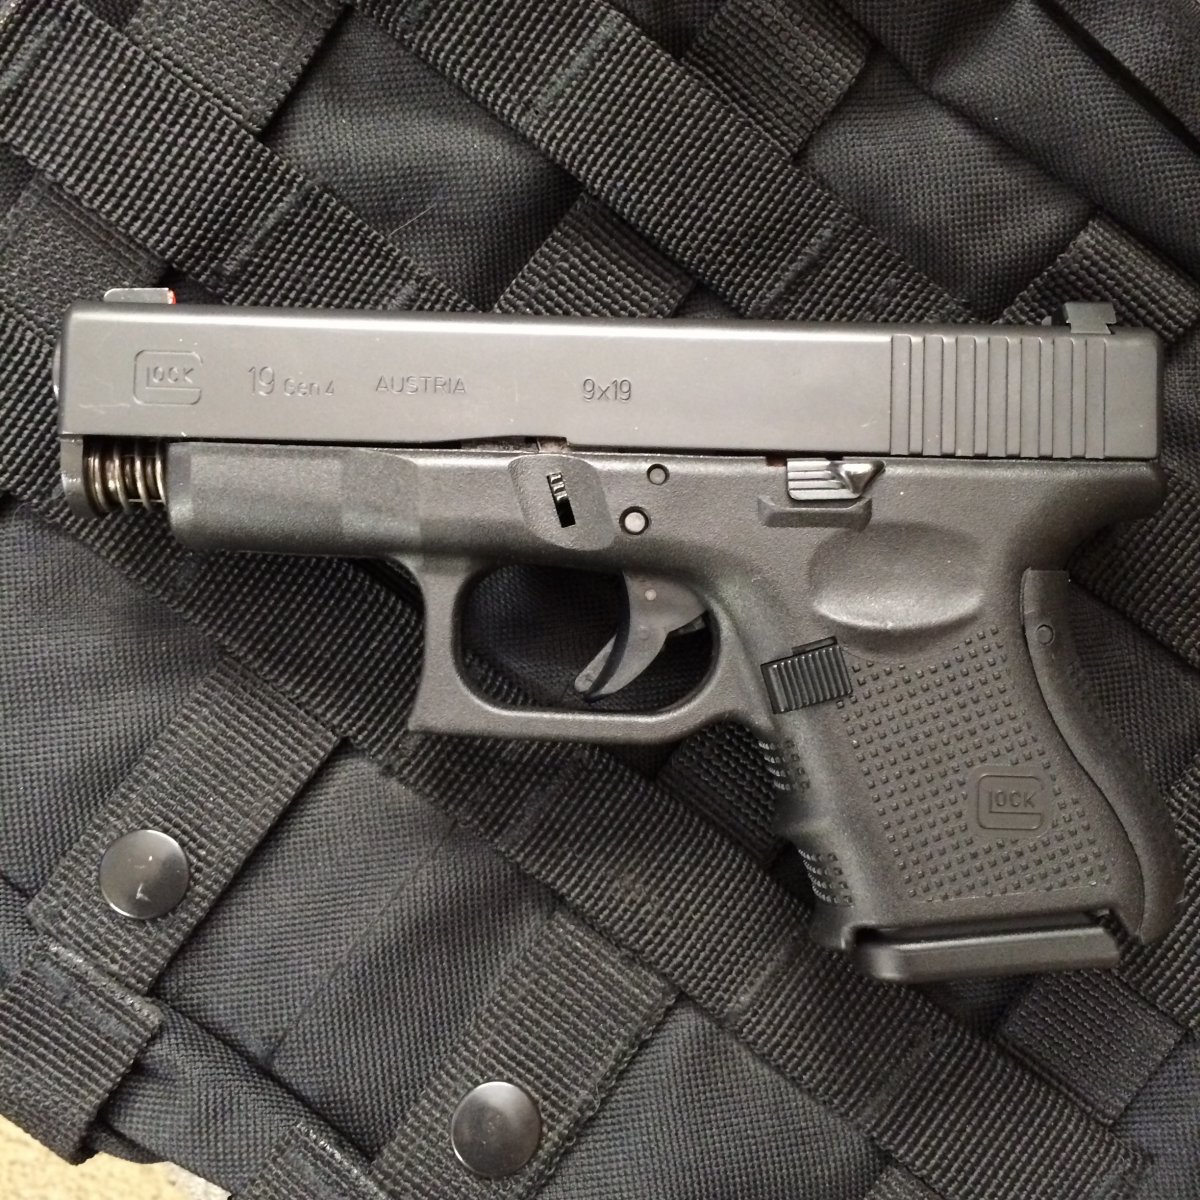 Glock 19 - Glock 26L build questions